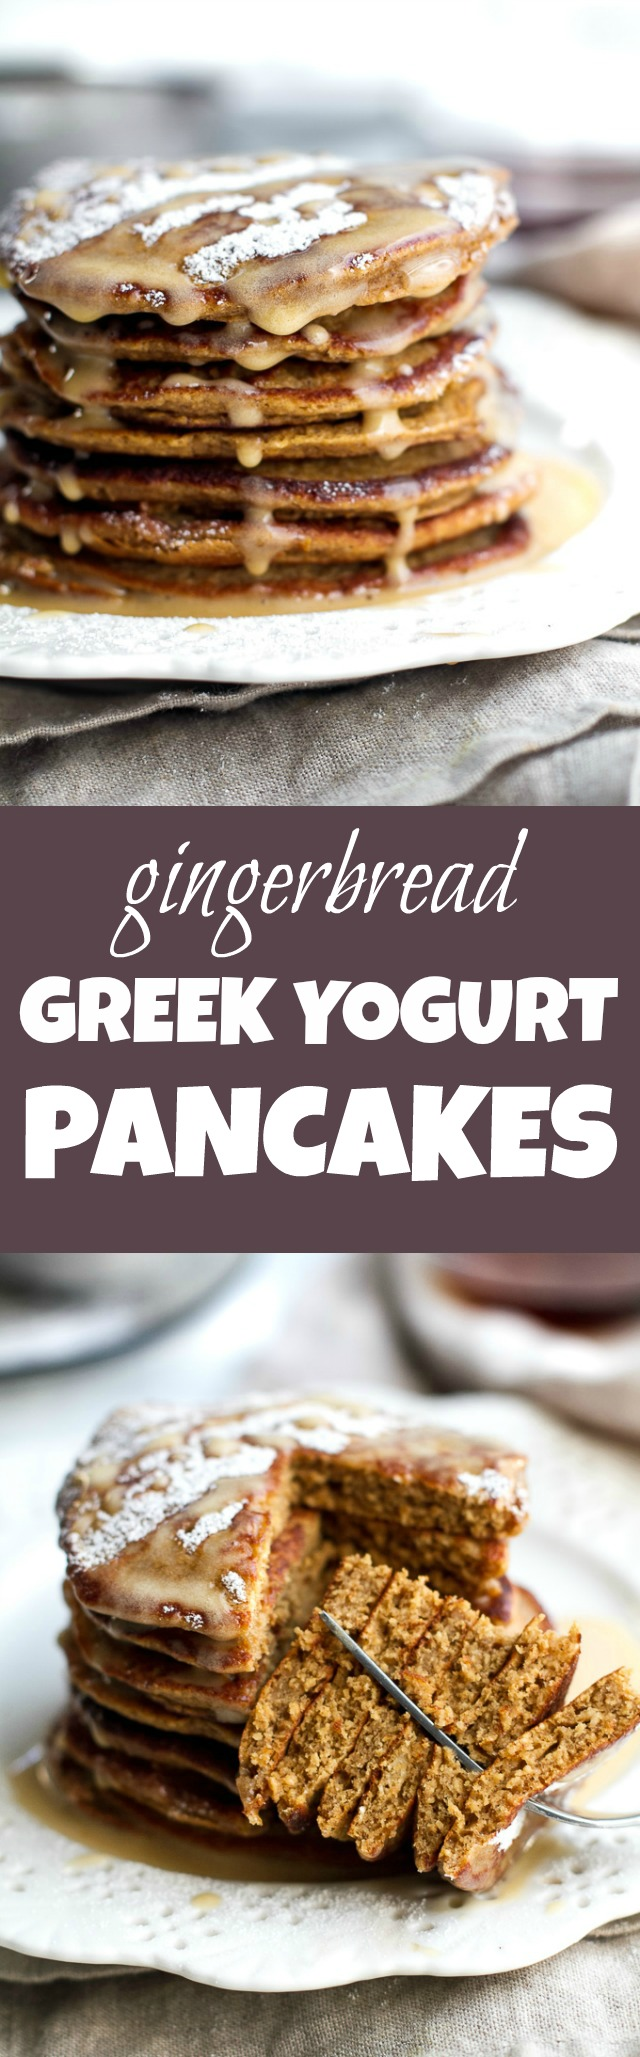 These light and fluffy Gingerbread Greek Yogurt Pancakes are sure to keep you satisfied all morning with over 20g of whole food protein! They're gluten-free thanks to the oats, whipped up in the blender in under 5 minutes, and LOADED with sweetness and spice | runningwithspoons.com